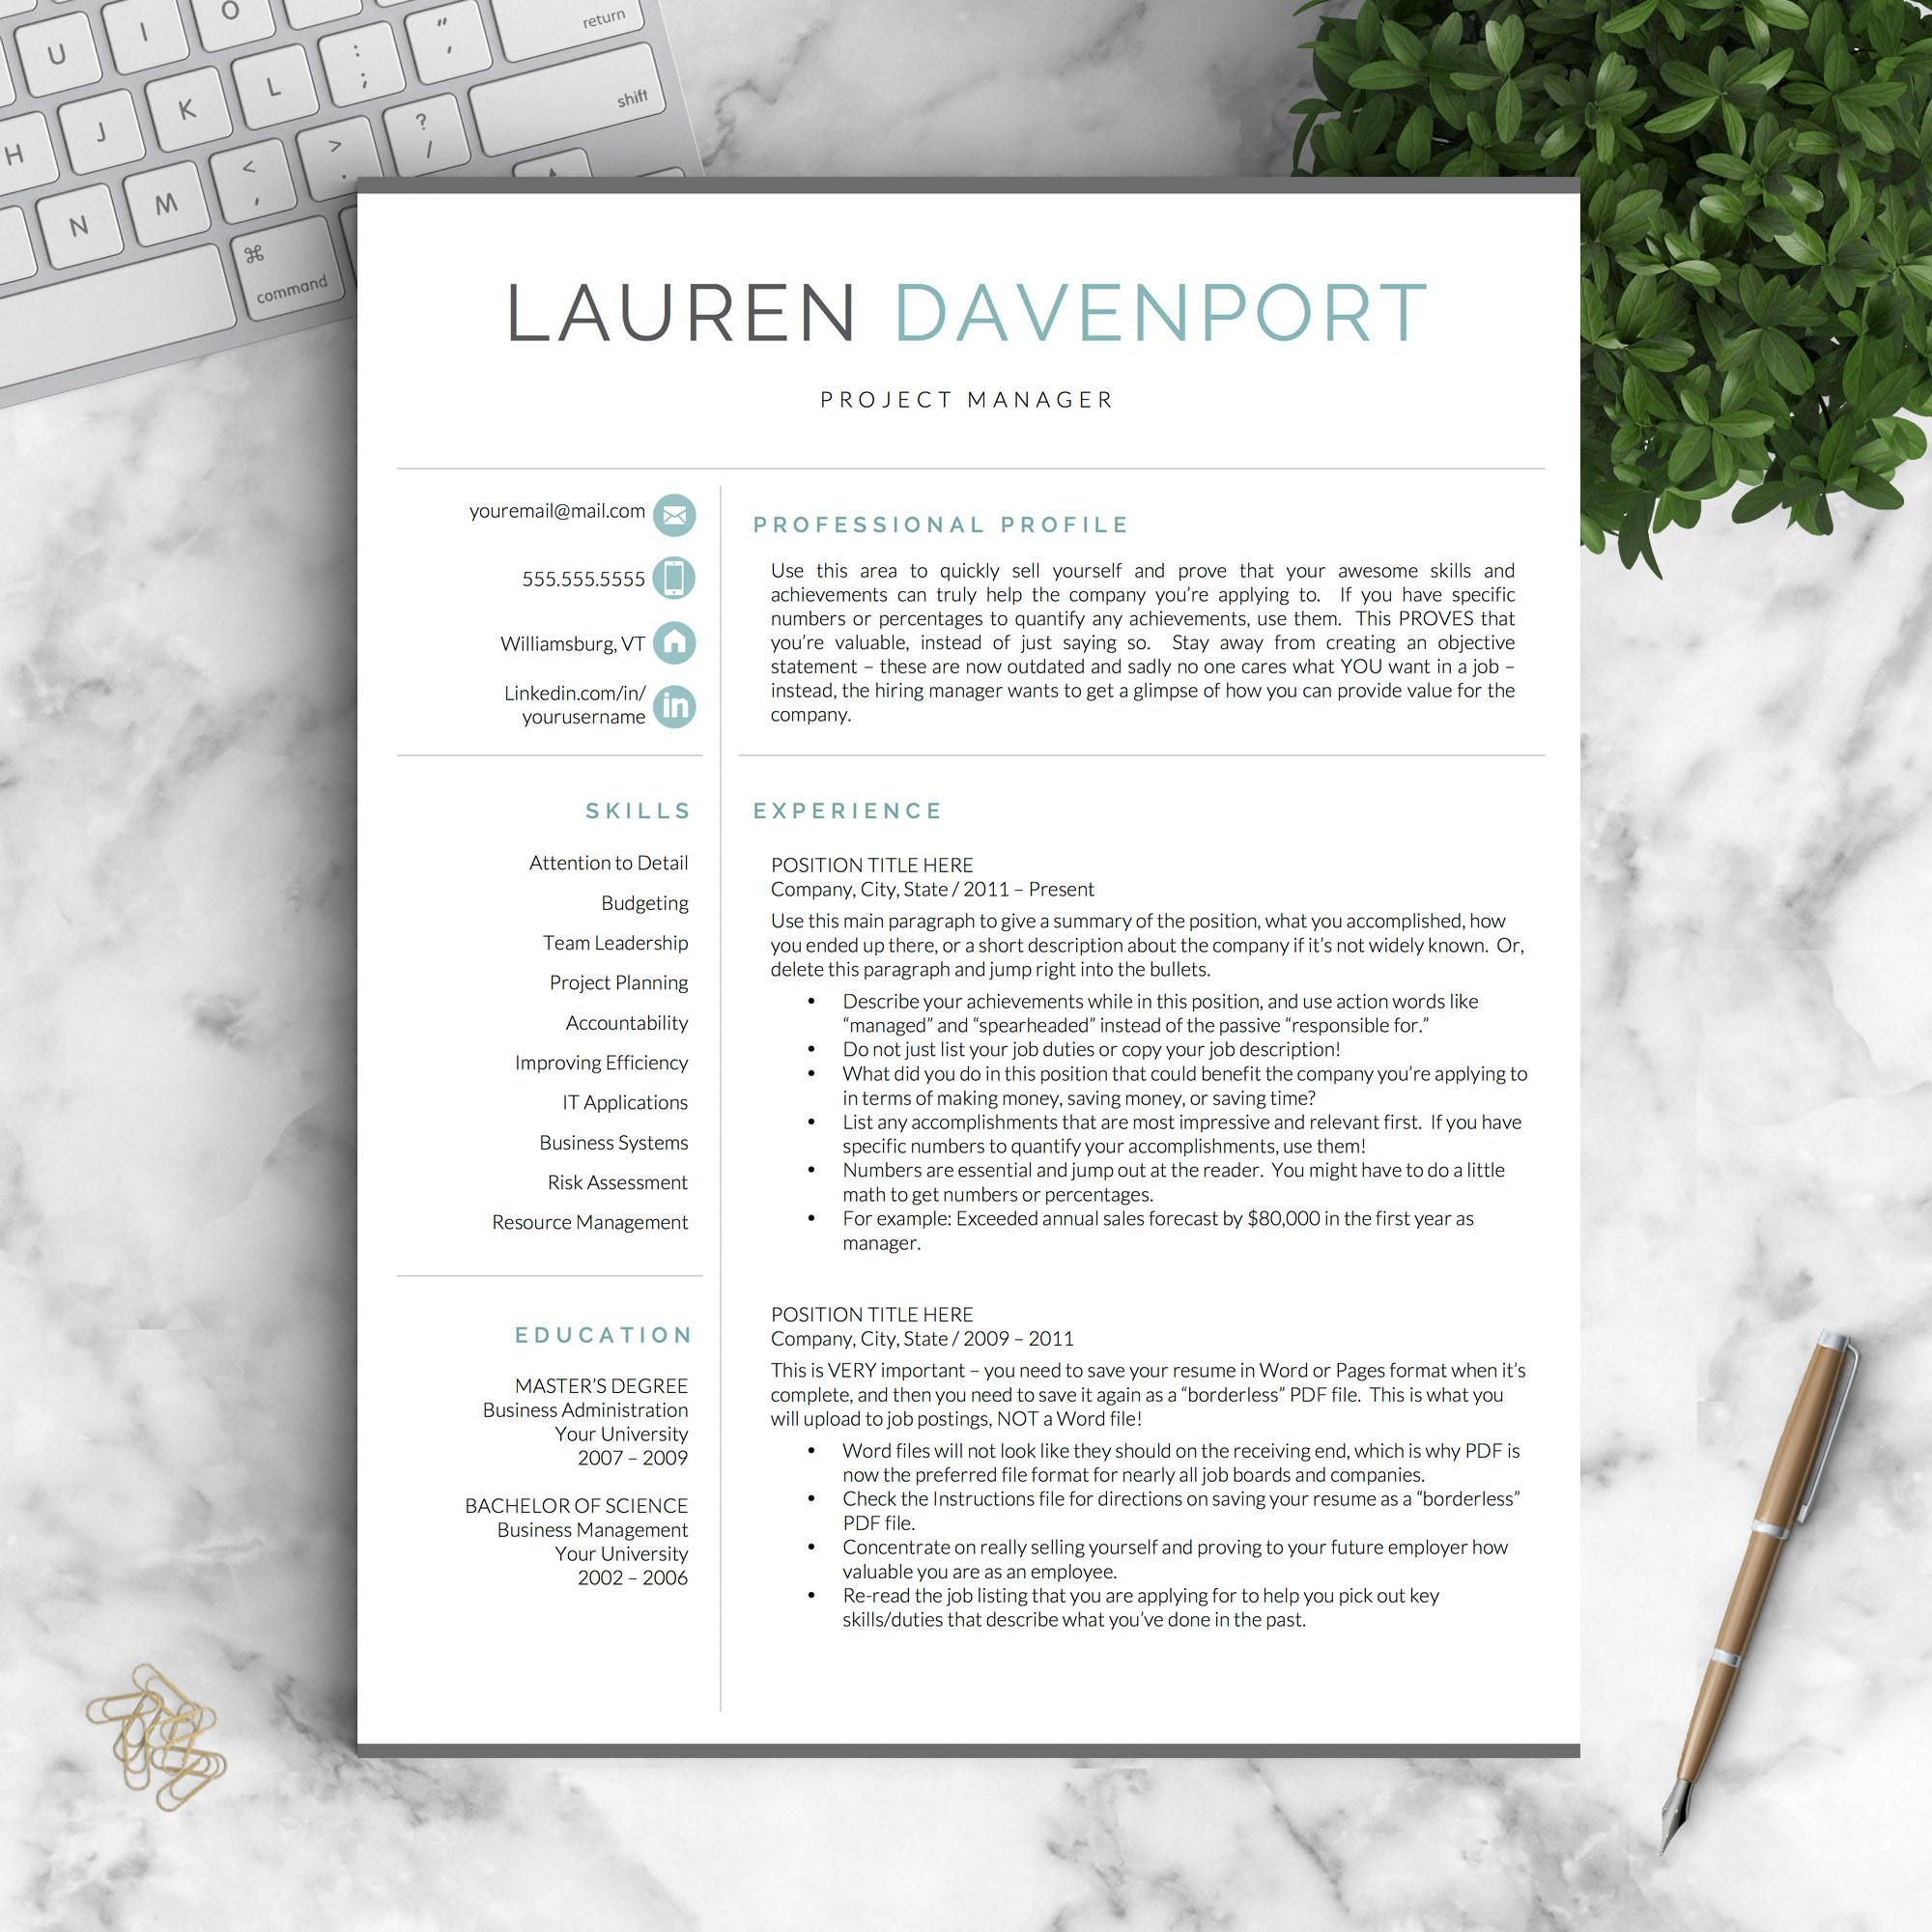 Stand Out With This Modern Resume Template For Word U0026 Pages: The Davenport  U2022 1, 2 And 3 Page Resume Templates, Cover Letter, References, Social Media  Icons, ...